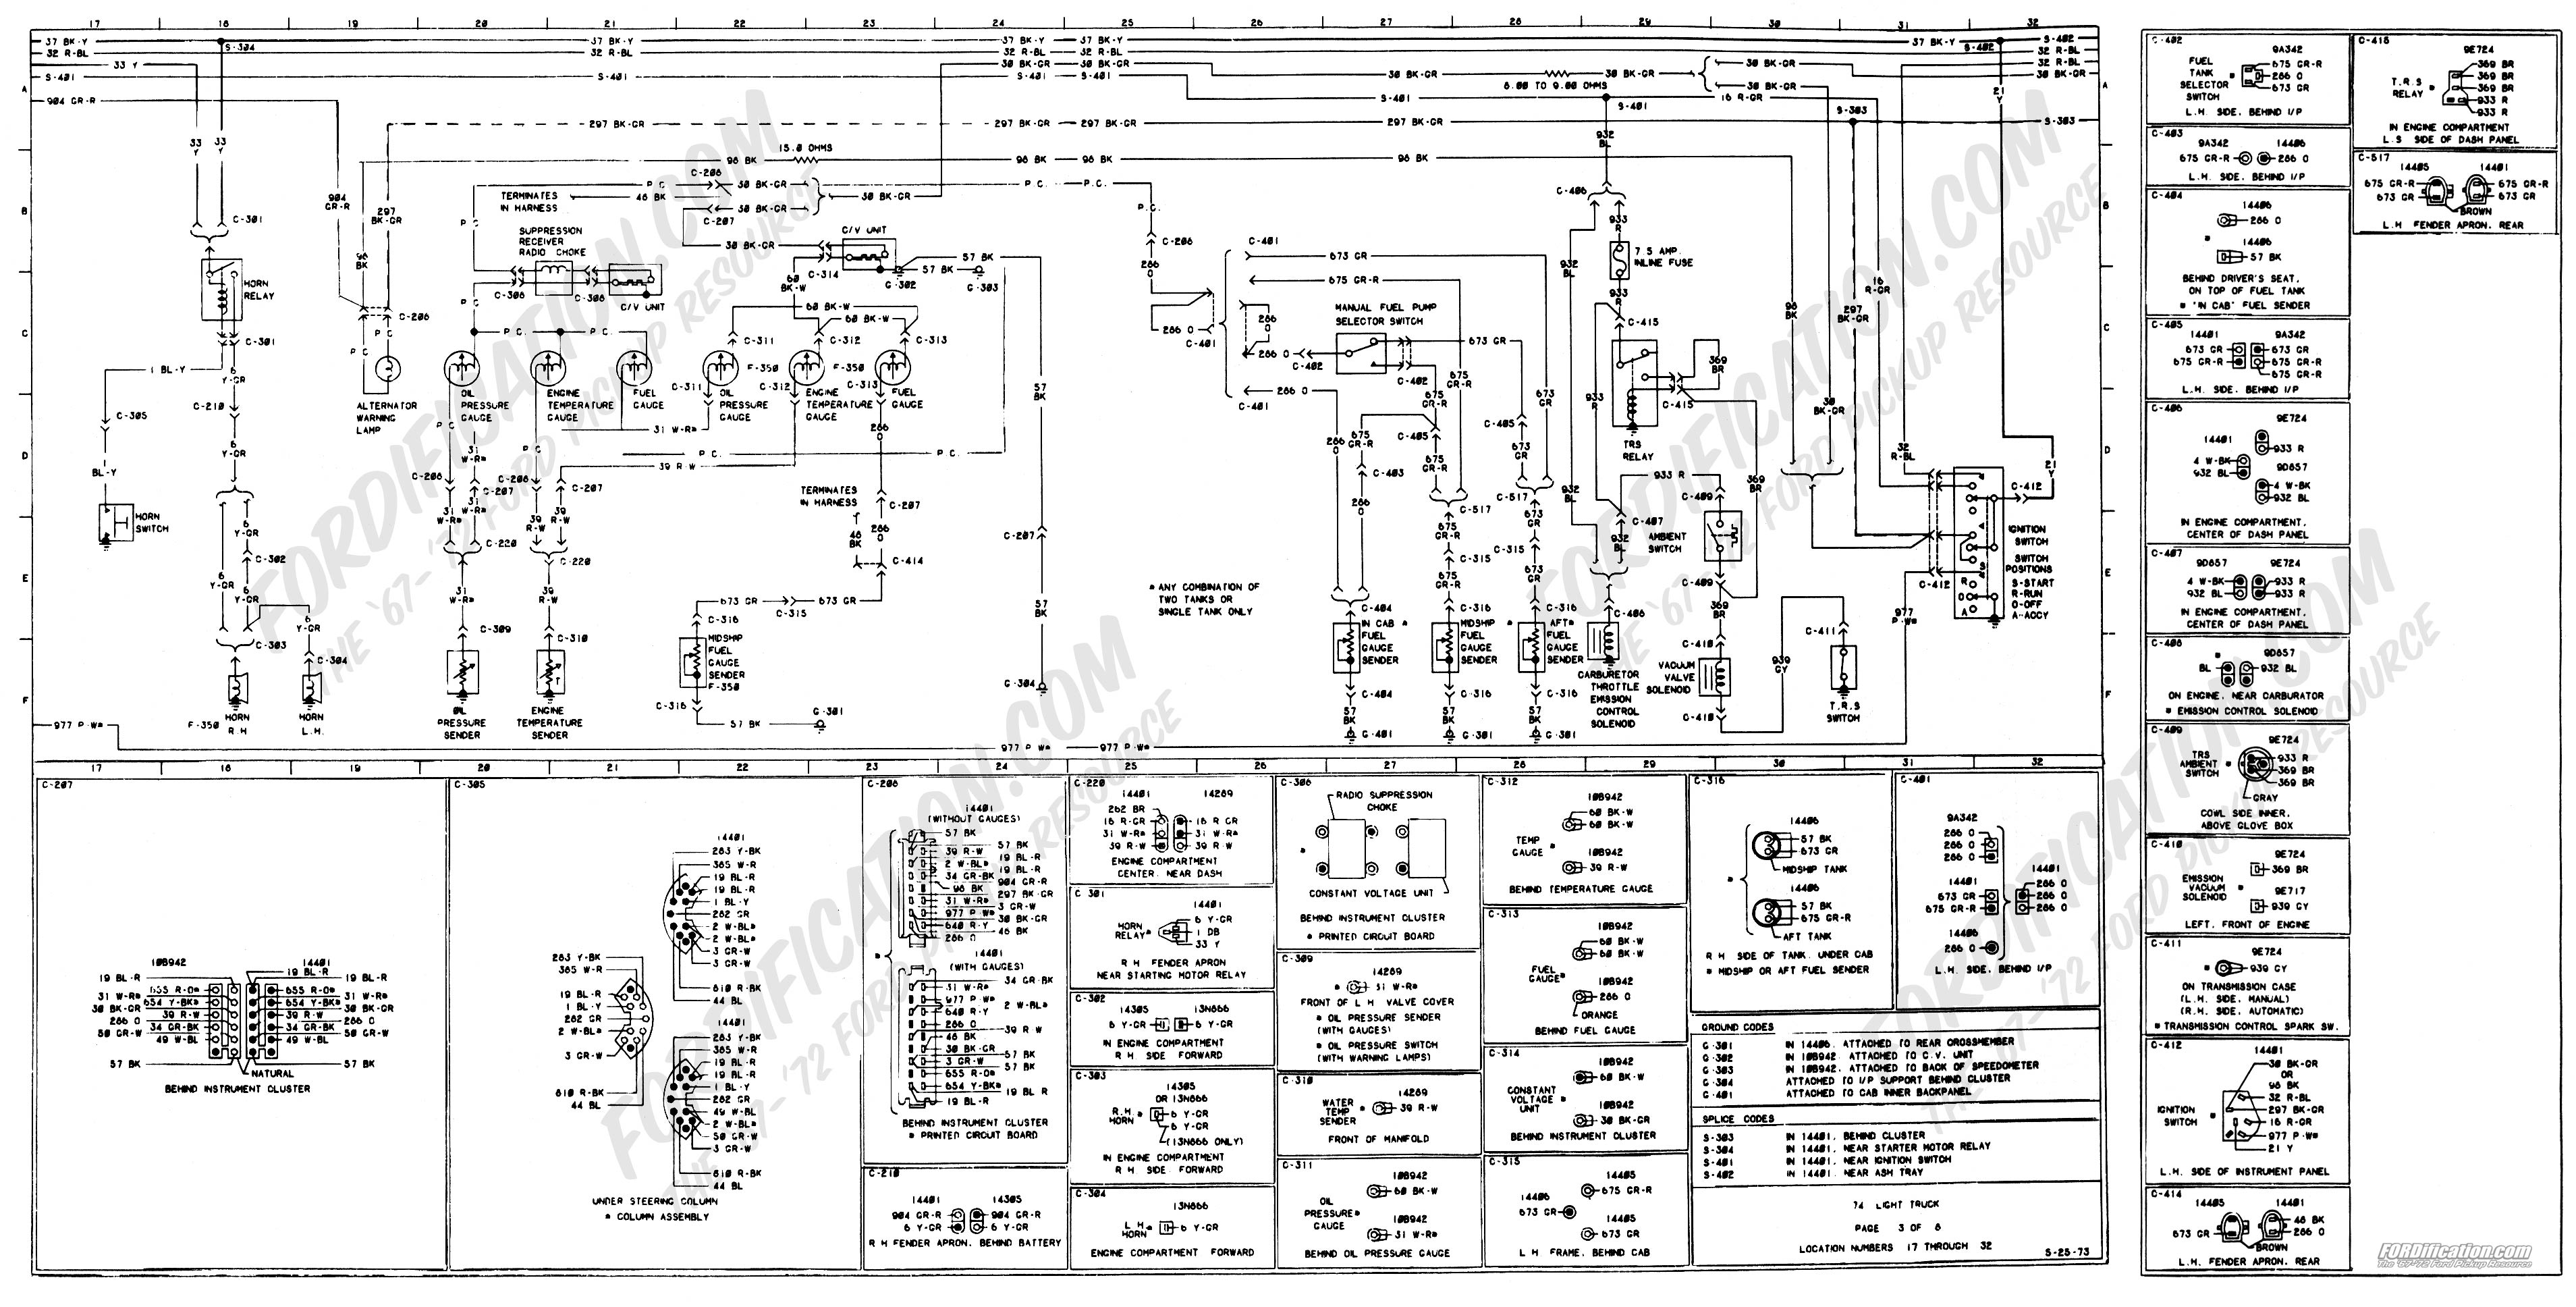 wiring_74master_3of8 1973 1979 ford truck wiring diagrams & schematics fordification net 1979 ford truck fuse box diagram at bayanpartner.co